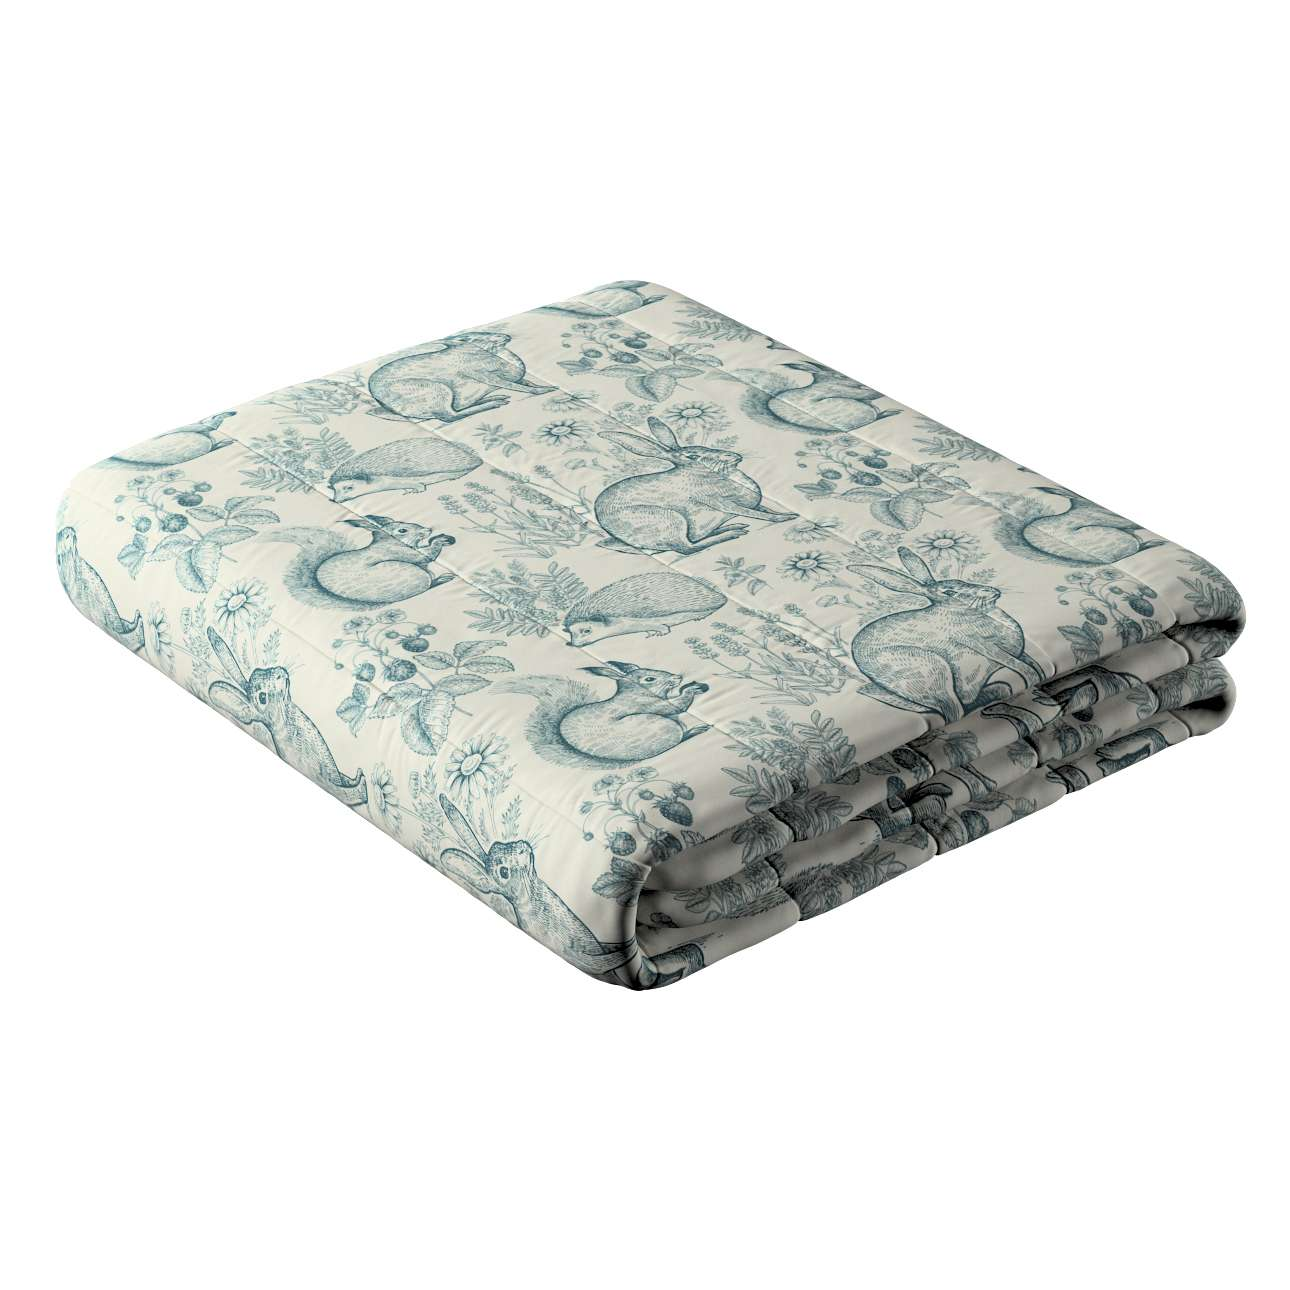 Striped quilted bedspread in collection Magic Collection, fabric: 500-04